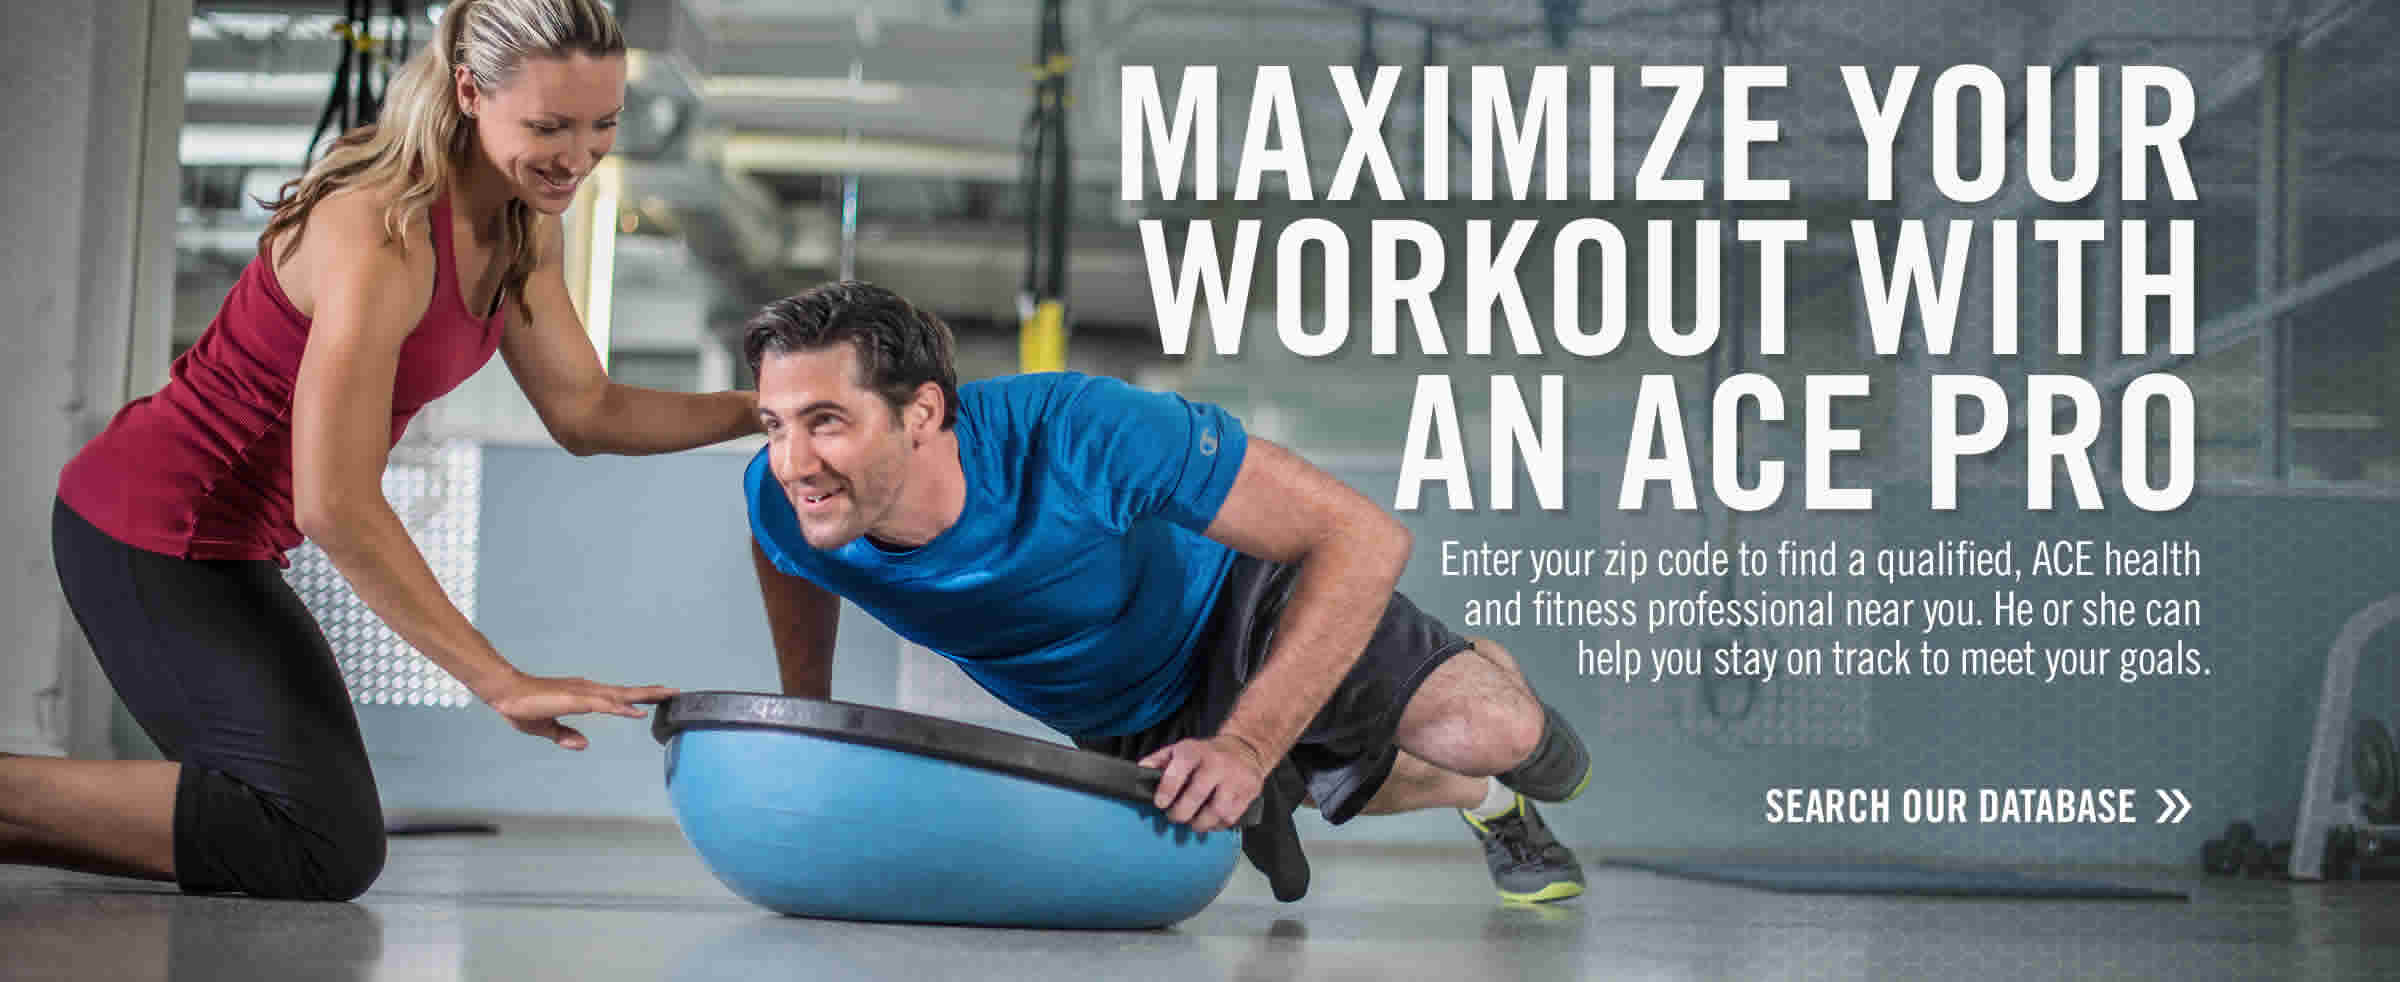 Maximize your workout with an ACE Pro